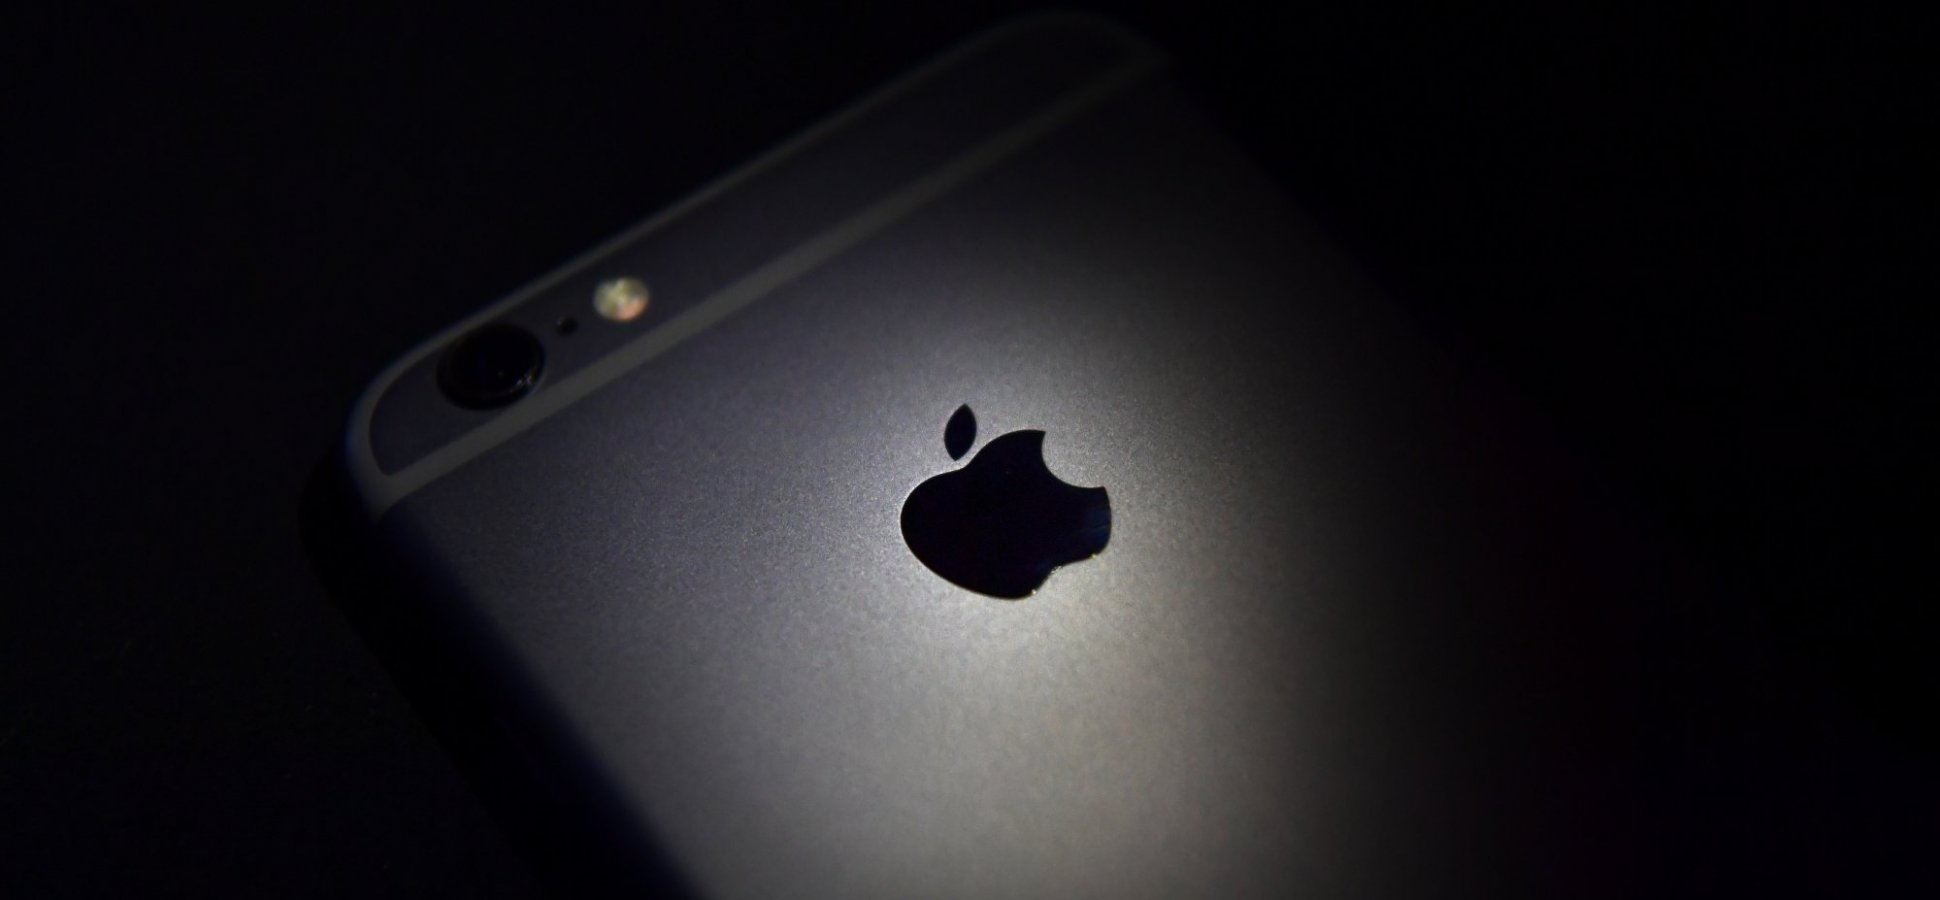 1.4 Billion iPhones and iPads Are at Risk Due to This Major Security Flaw